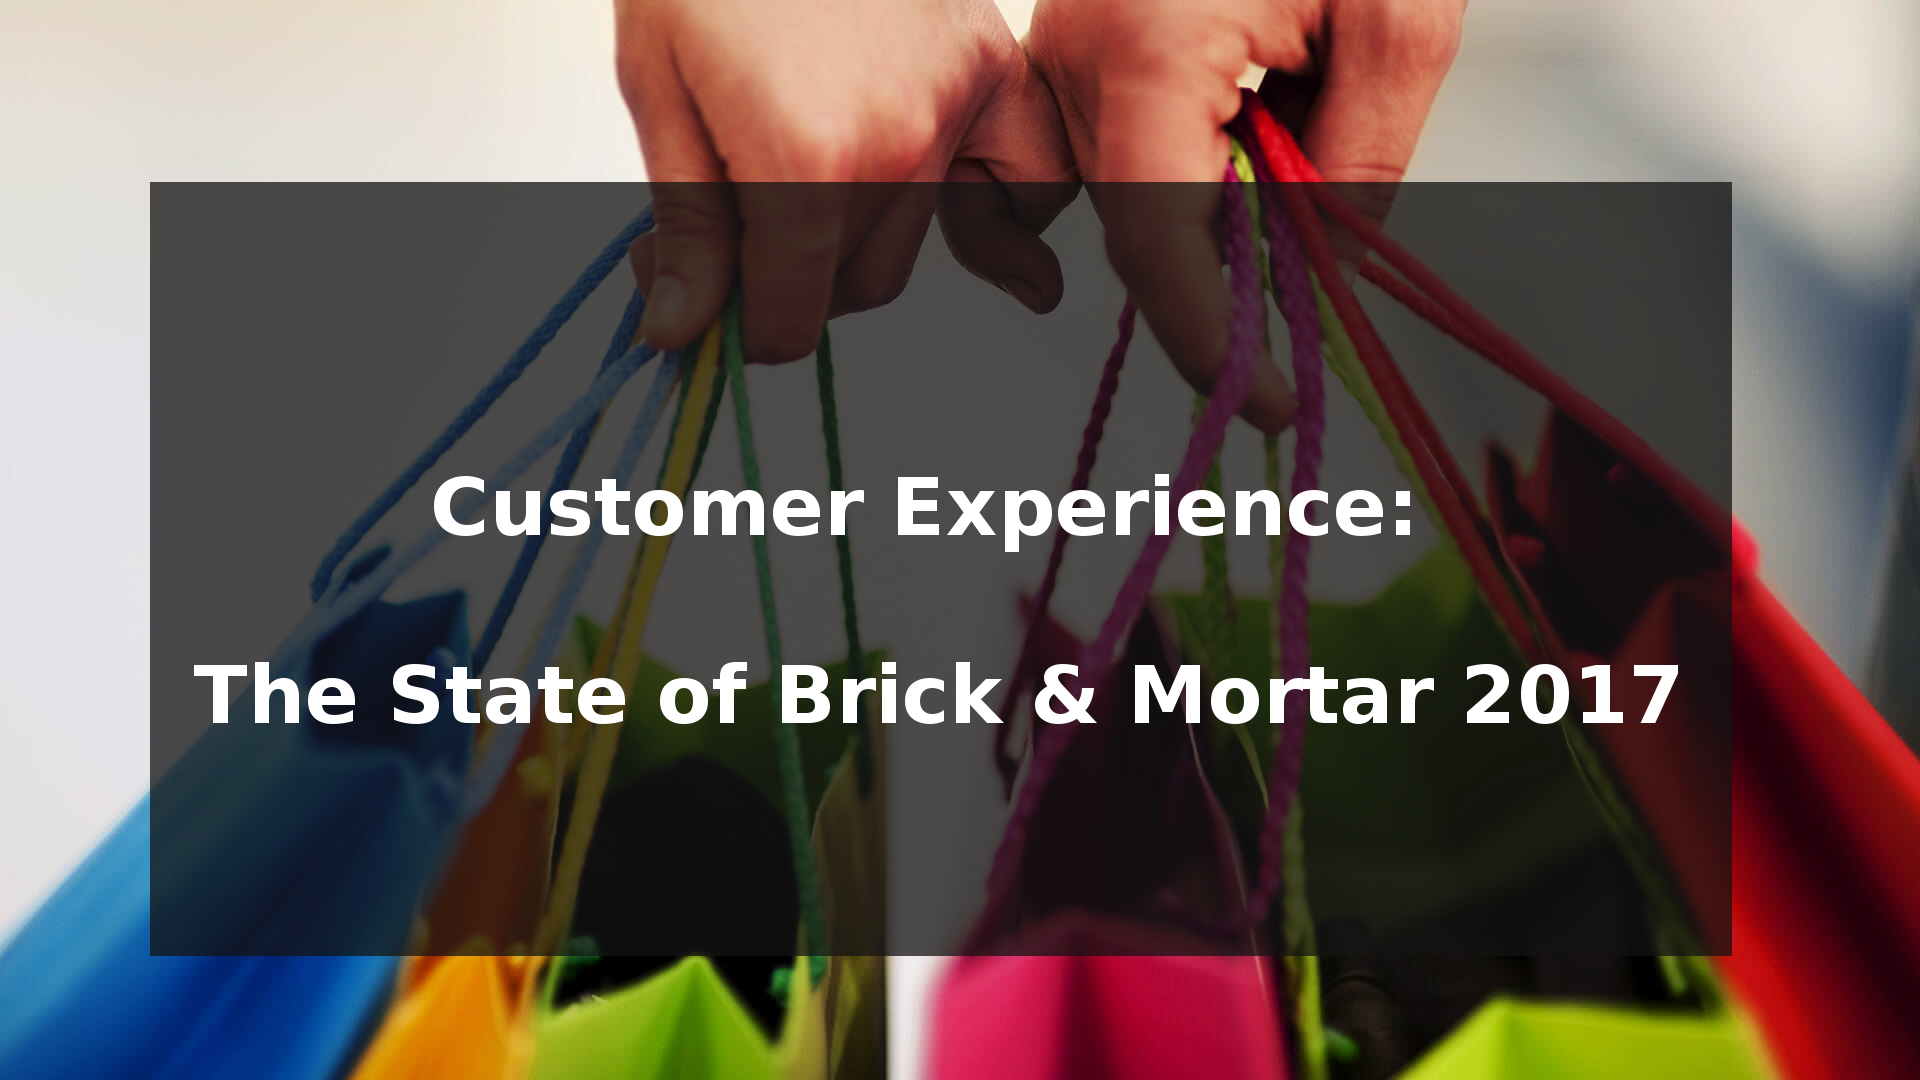 Customer Experience - The State of Brick & Mortar 2017